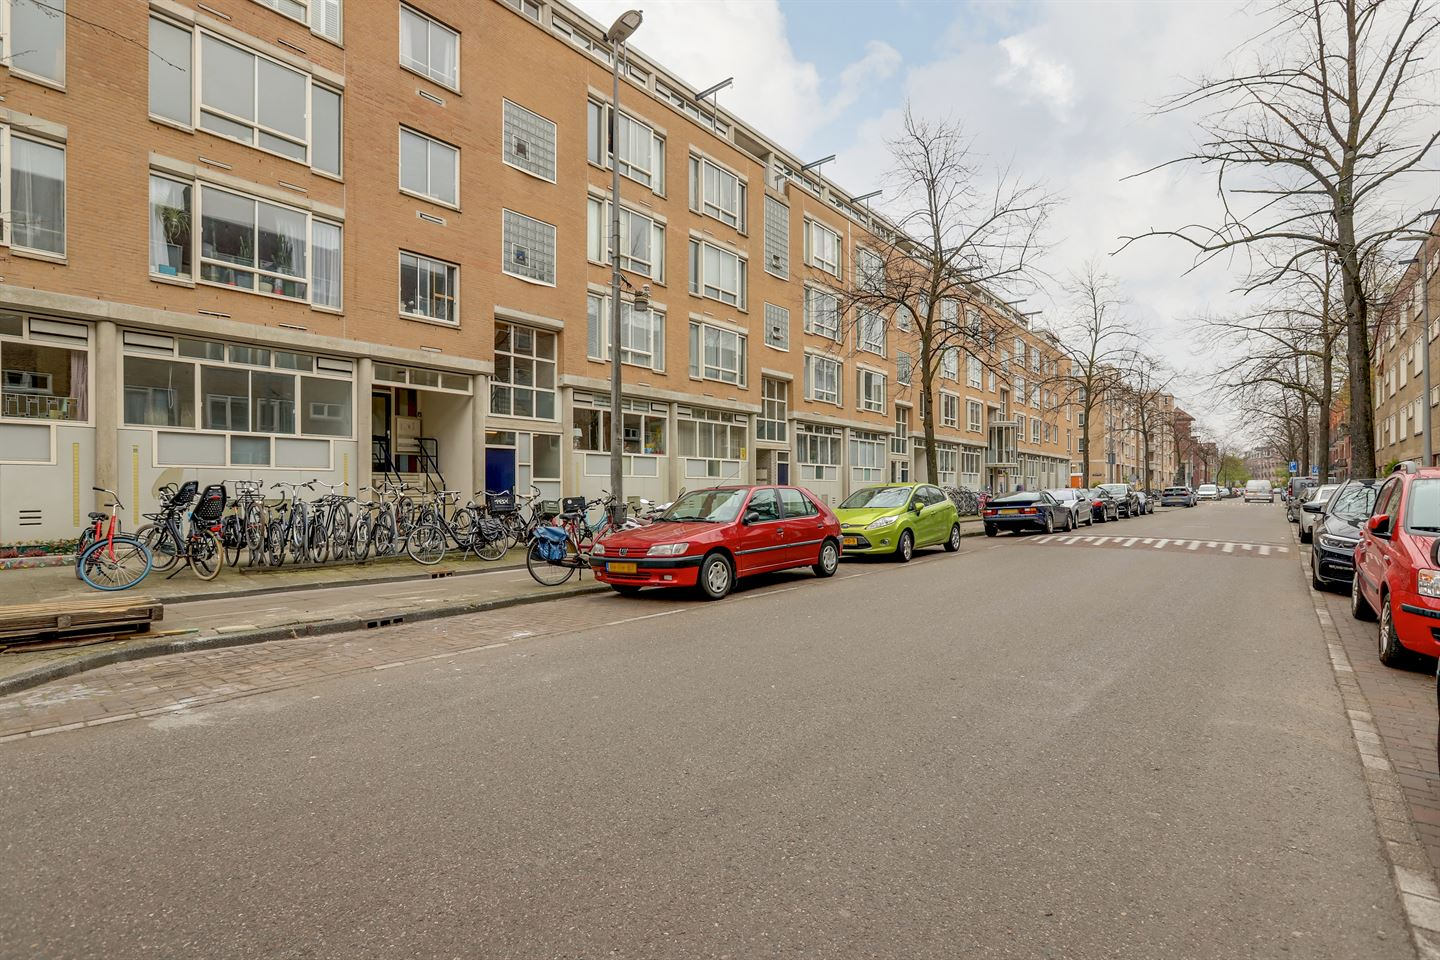 View photo 3 of Lutmastraat 34 -A